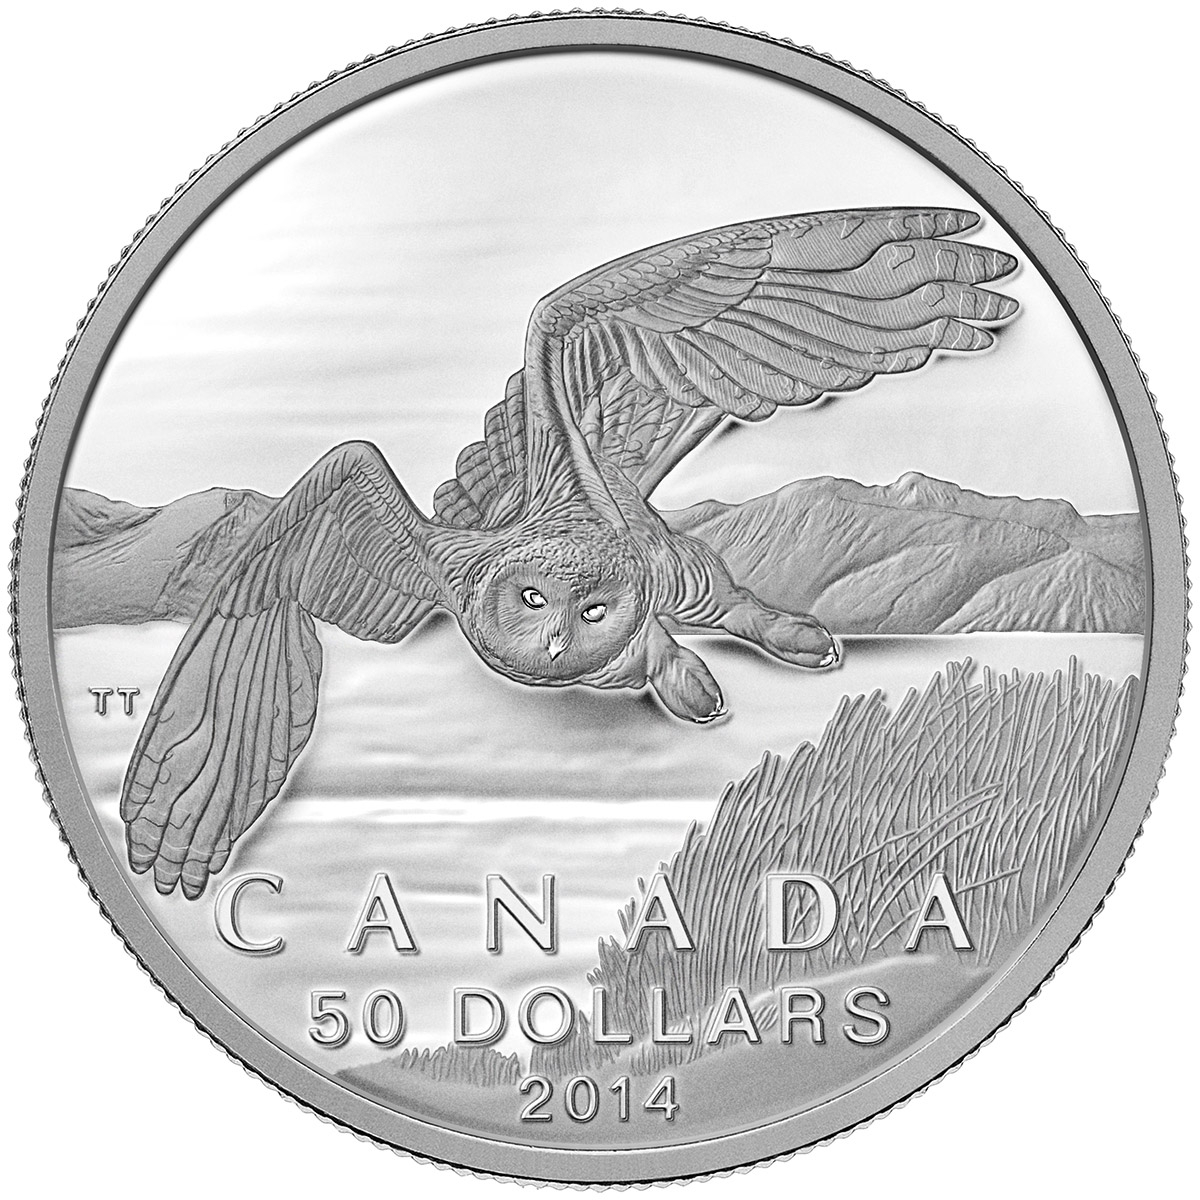 CANADA 2014 $50 Fine Silver Commemorative Coin - Snowy Owl - $50 for $50 - #2 In Series